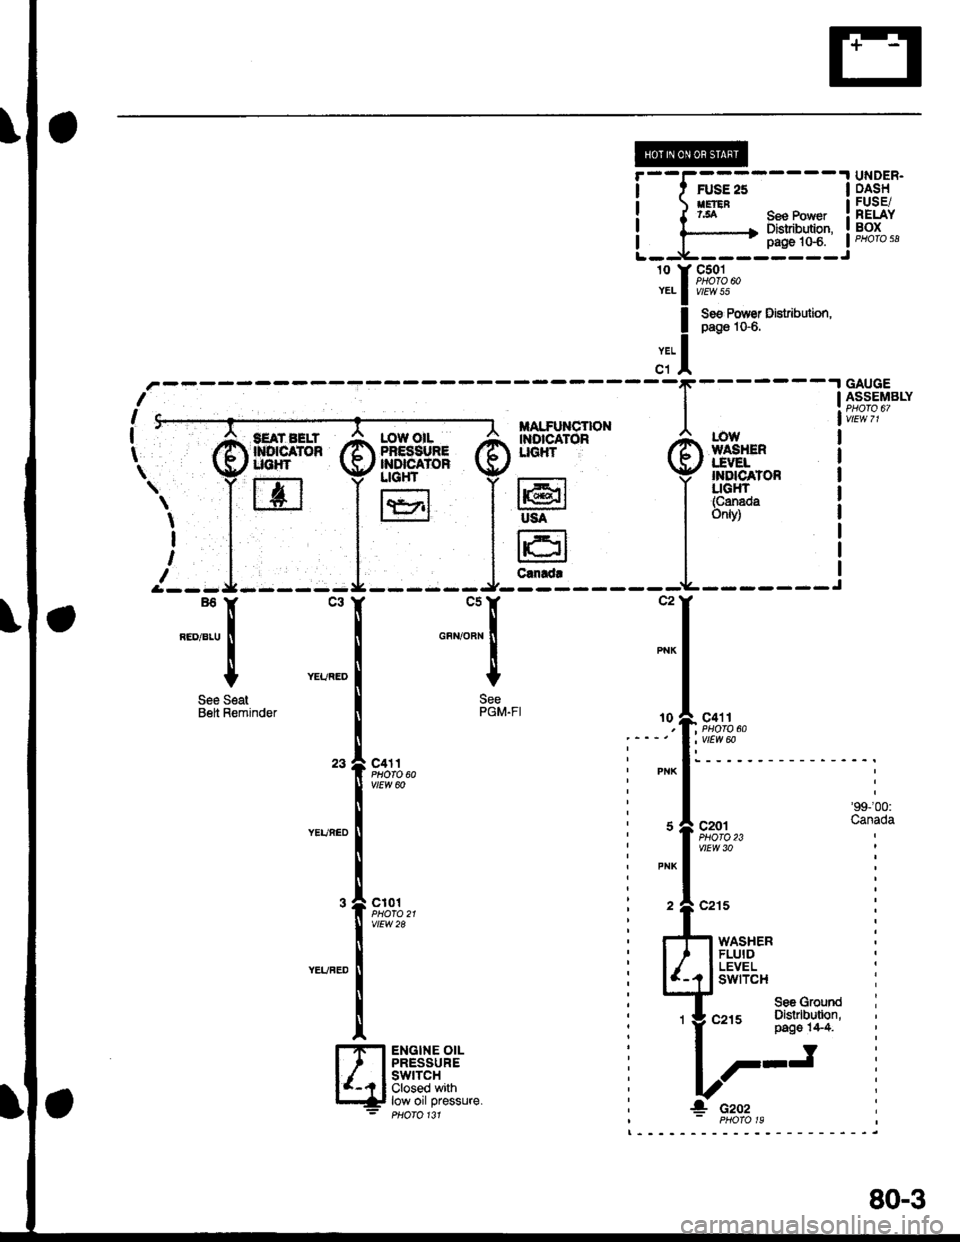 Honda Cvcc Engine Diagram Honda B20A Engine Wiring Diagram